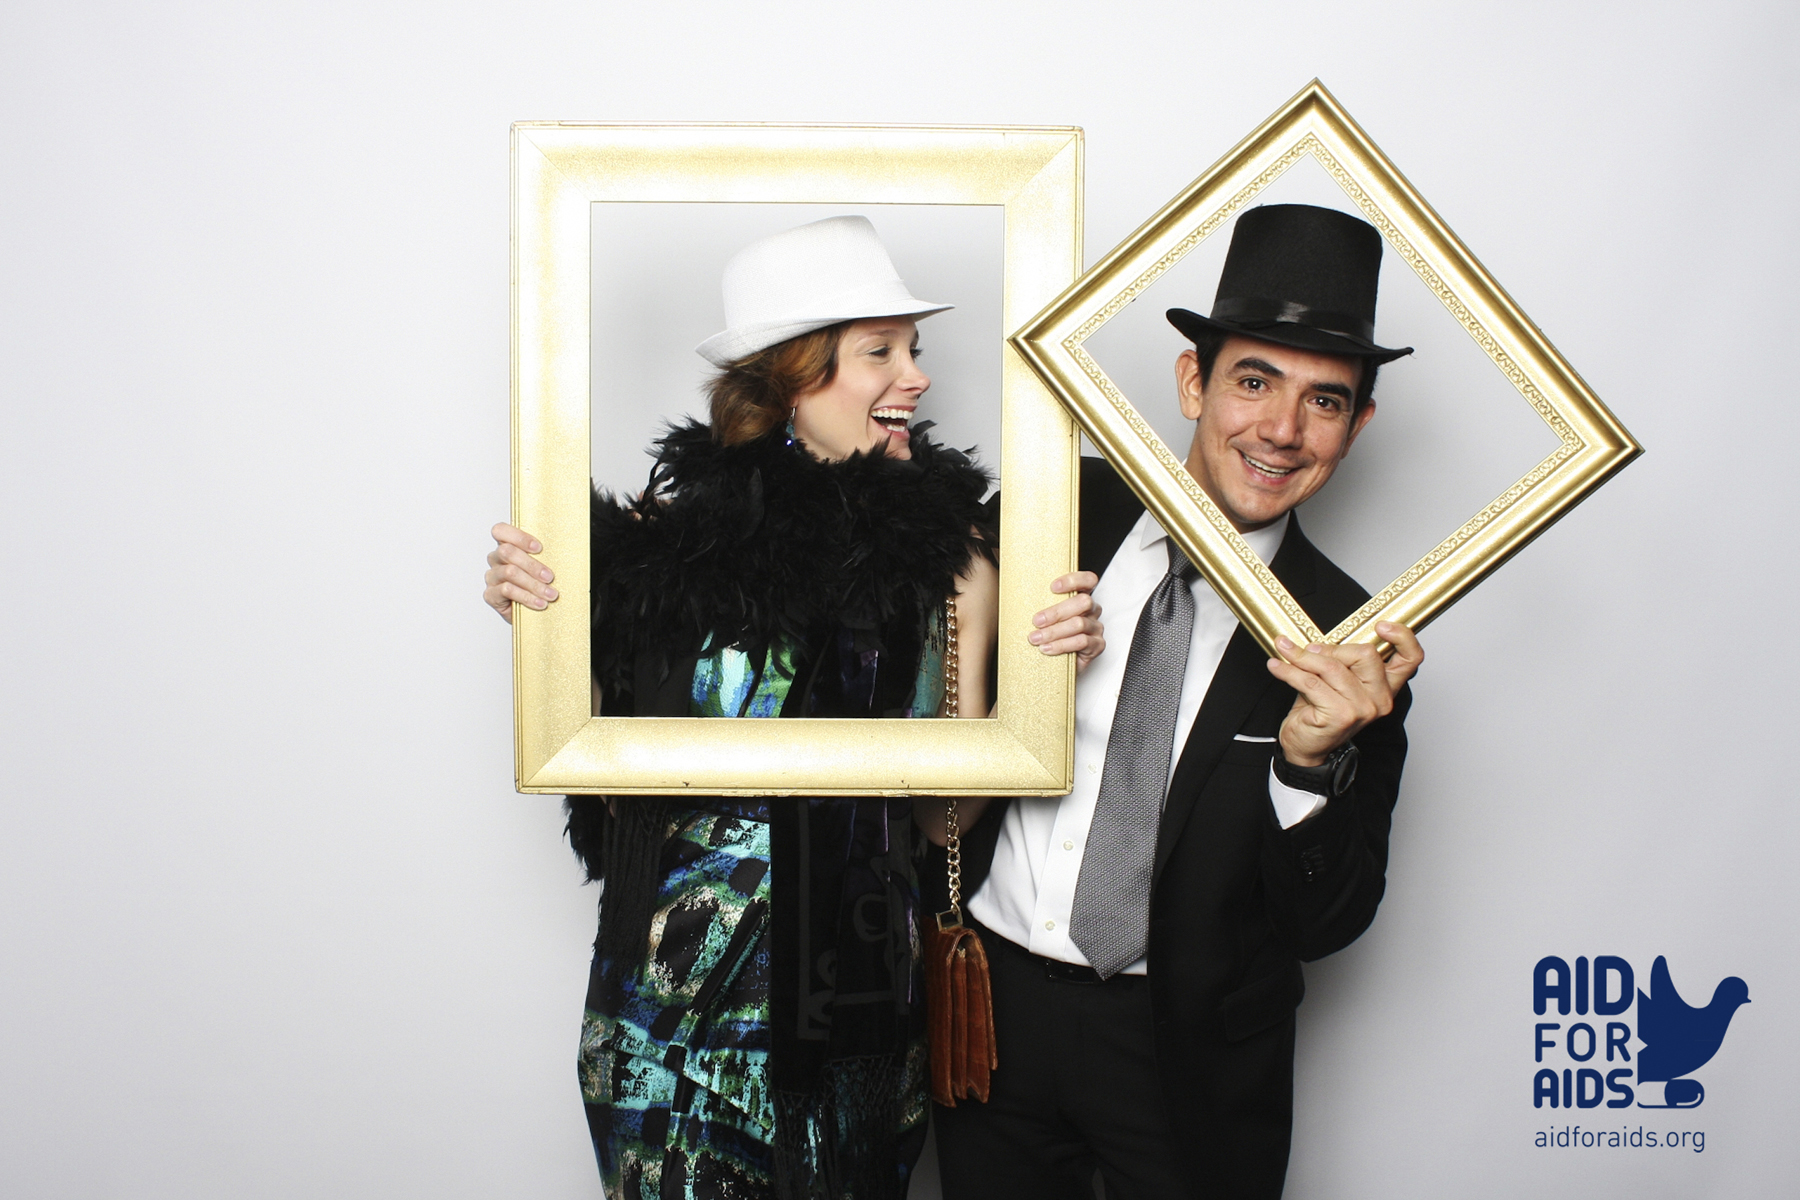 New York Photobooth aid for aids hero gala